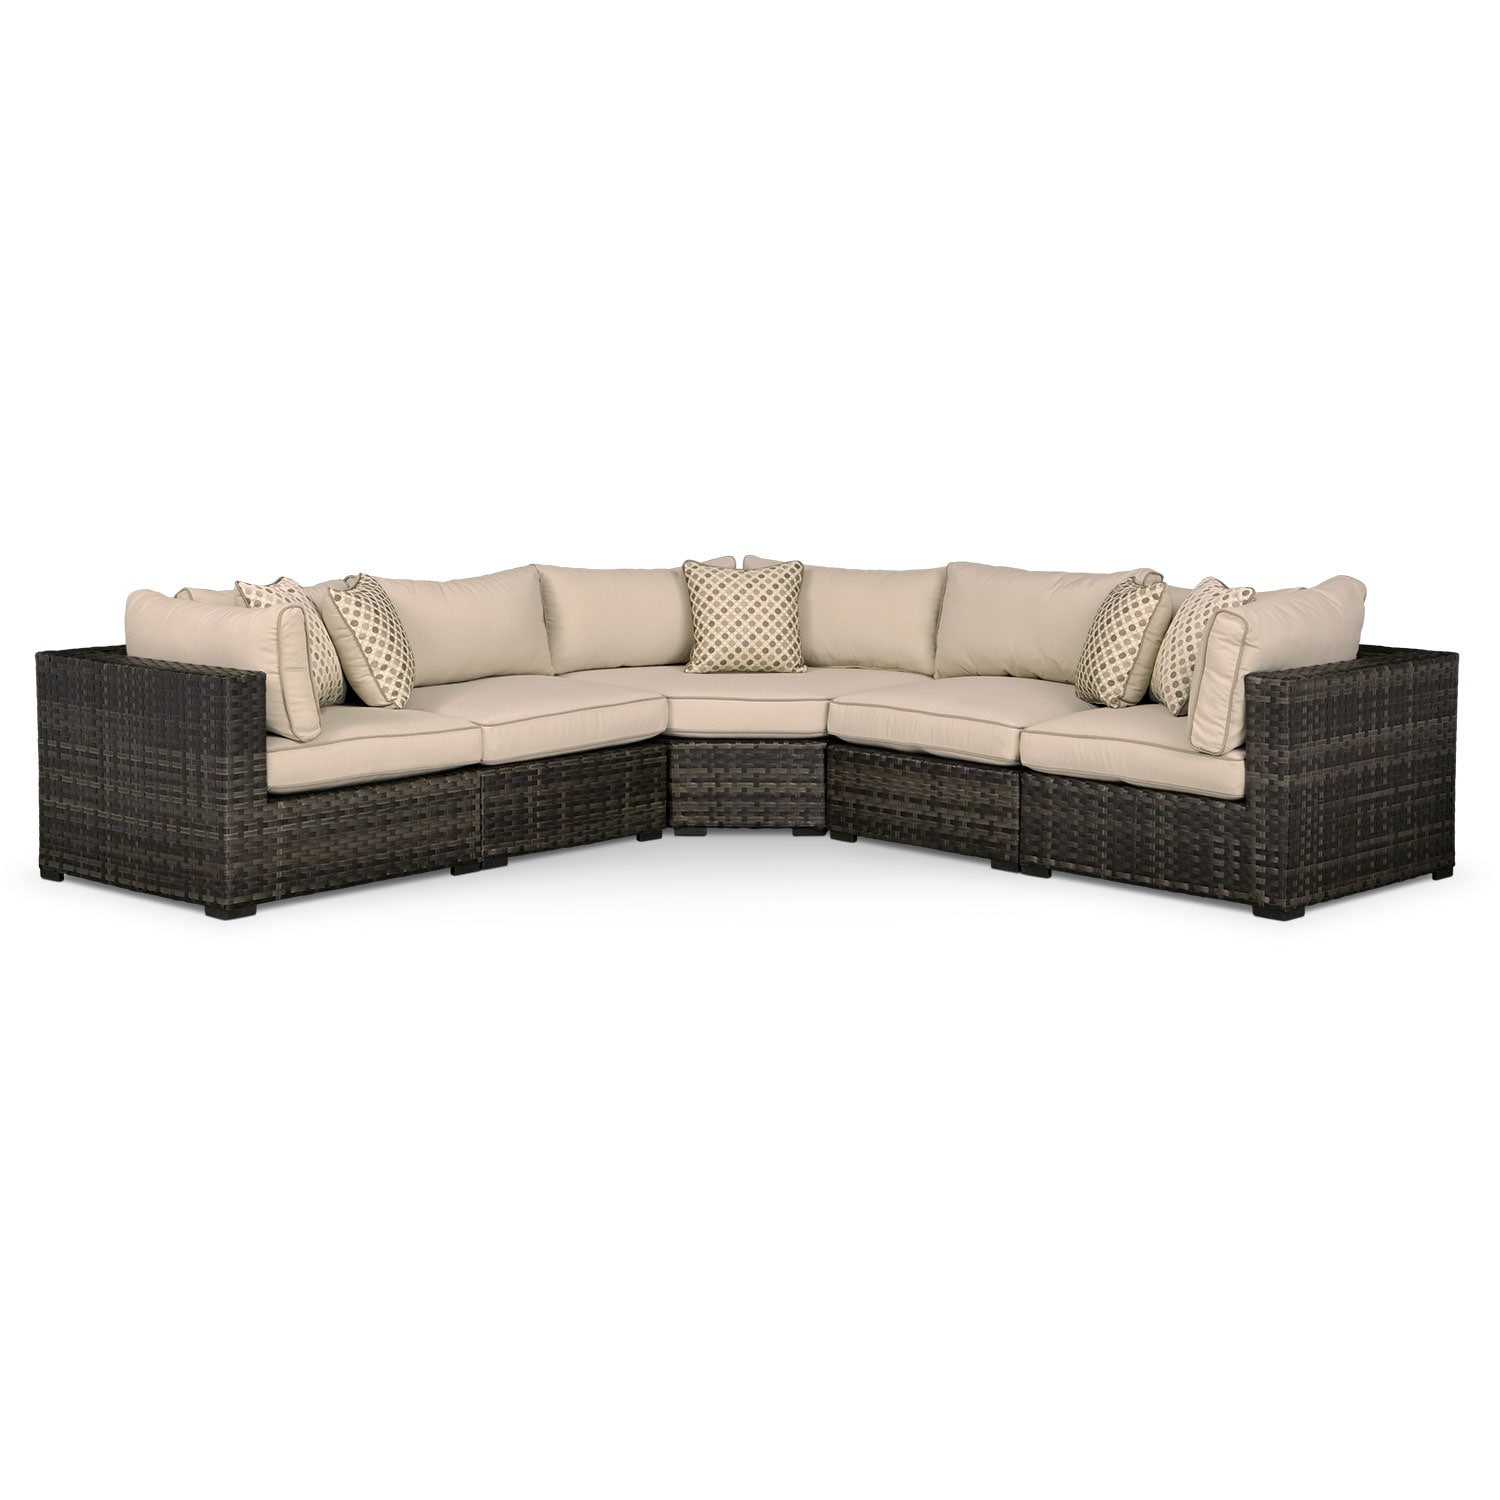 Regatta 5-Piece Outdoor Sectional with Wedge - Brown